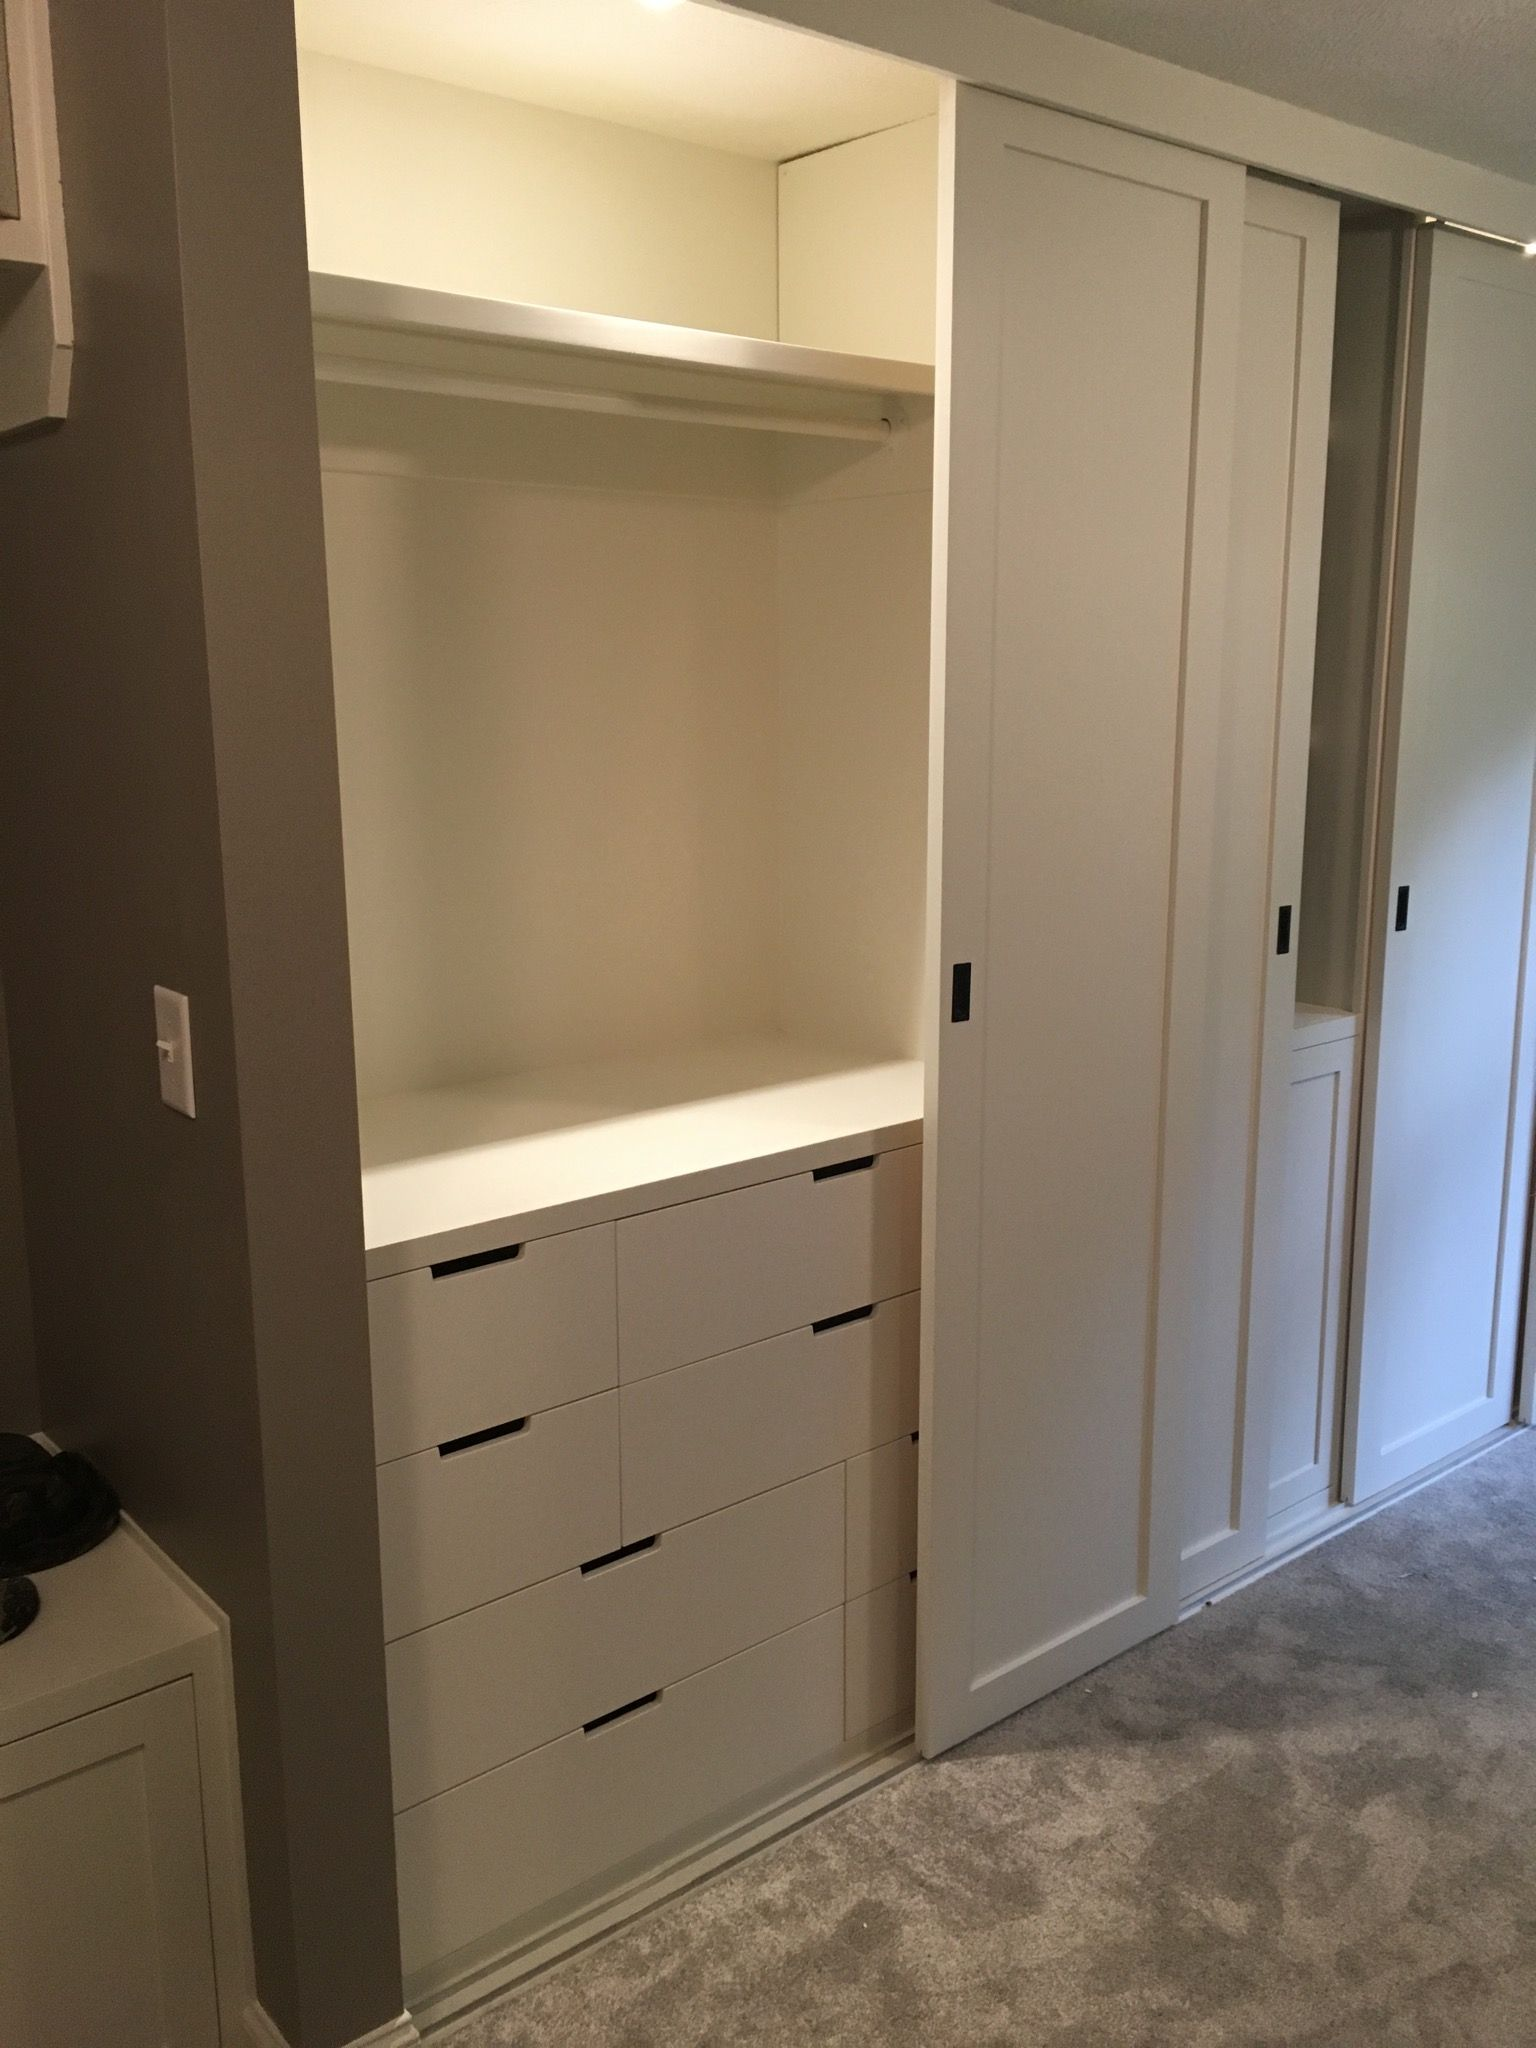 spaces living d departments dressers for bedroom dresser reviews your to product furniture closet display small fit marco cor